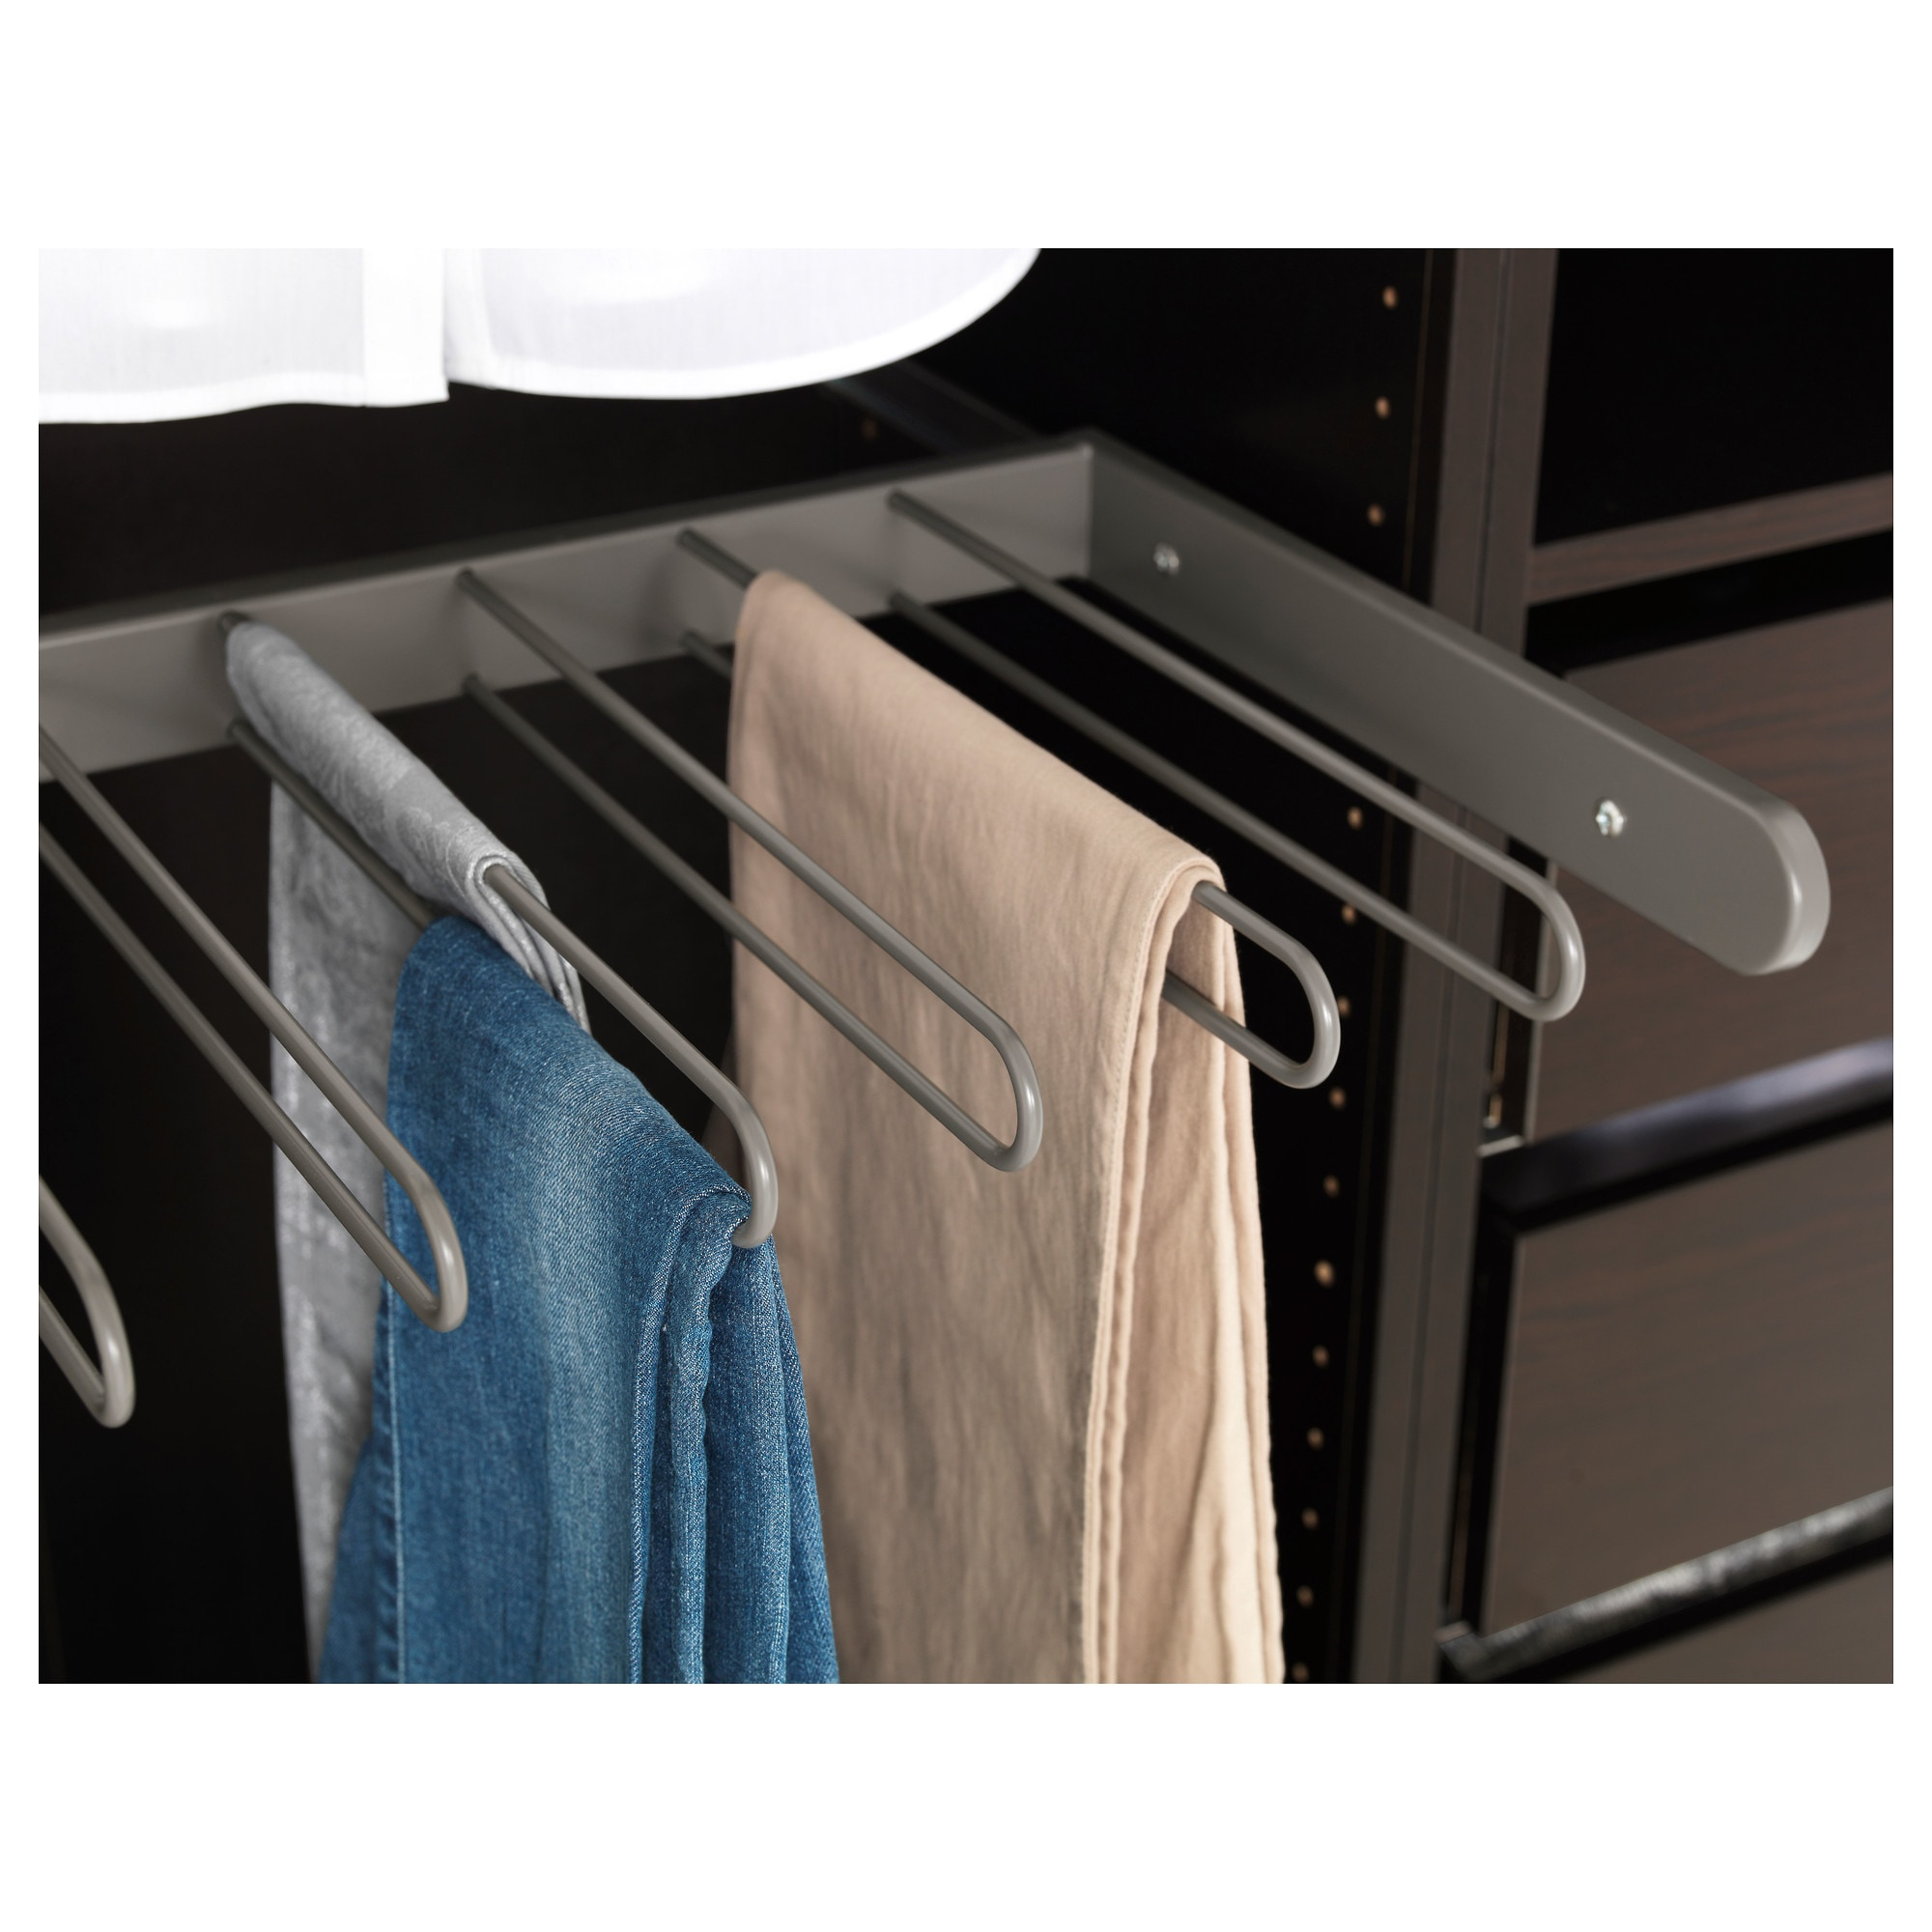 organized saving closets bedroom closet space organizing ideas swinging dreams too i became really appealing hangers might snob pants double hanger rack you how mbr saver with a and